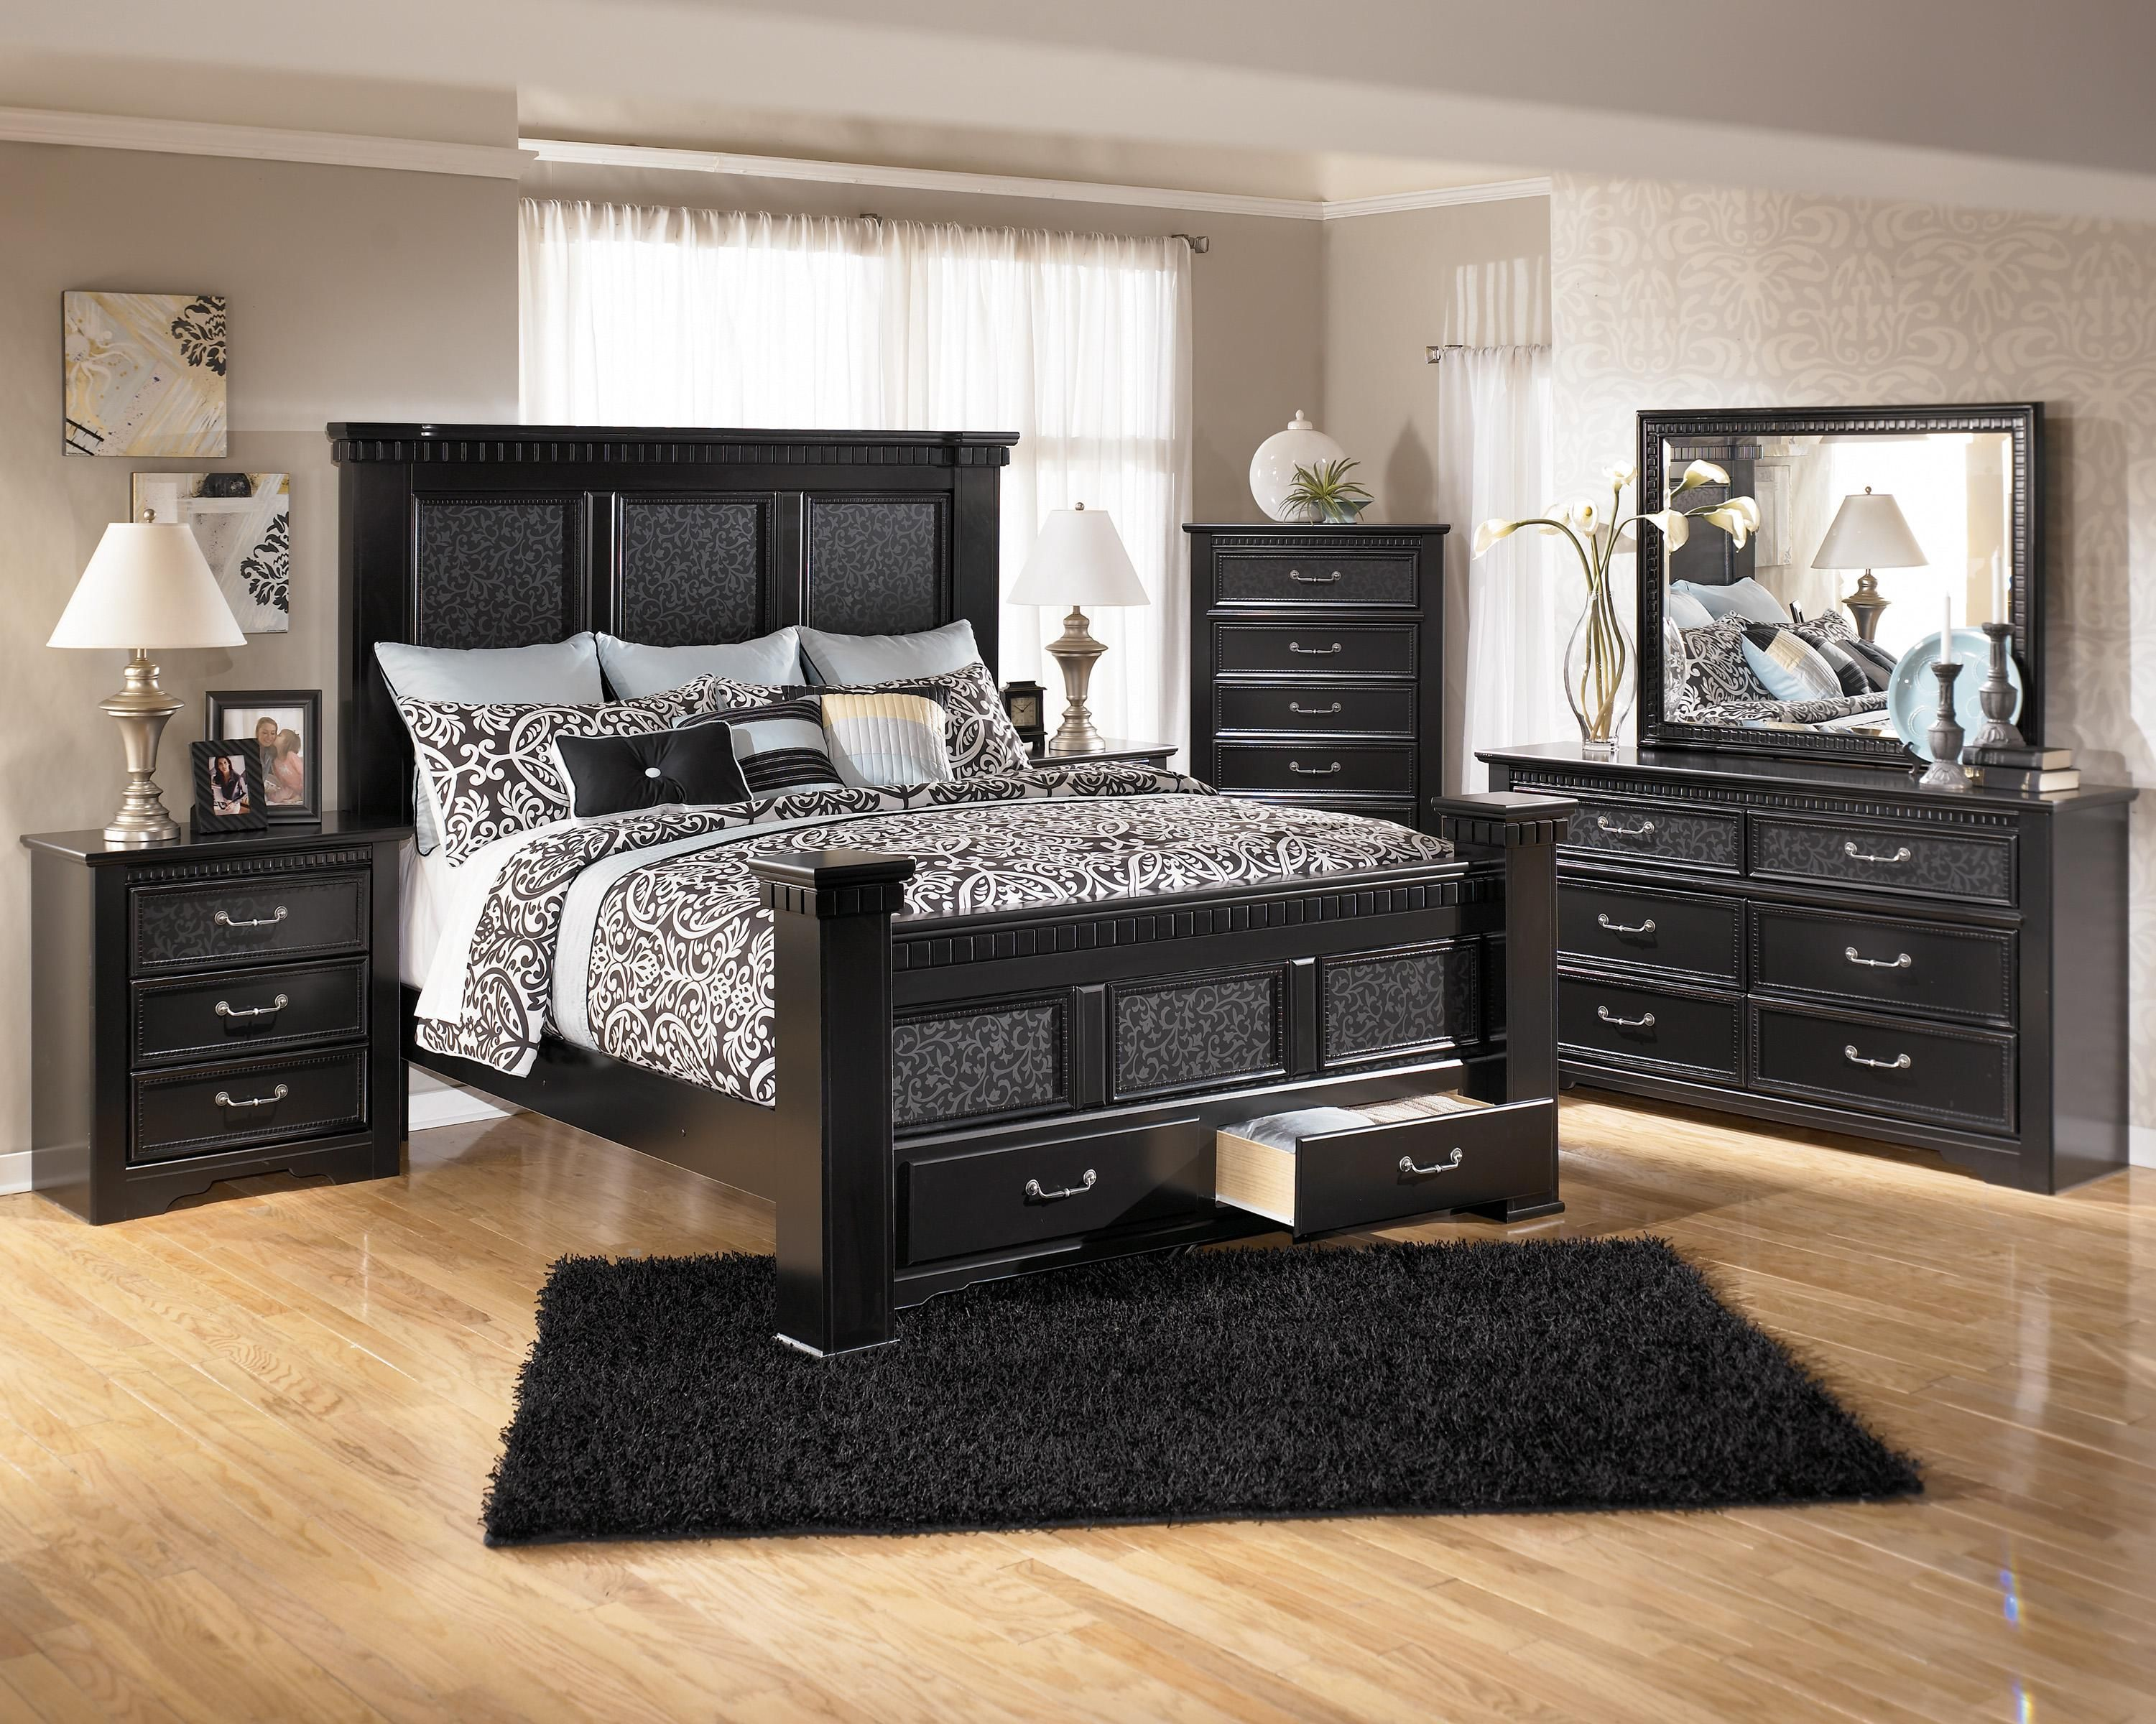 Ashley white bedroom furniture - Ashley Furniture Cavallino Bedroom Set With Mansion Poster Bed Storage Footboard Bed Only 799 95